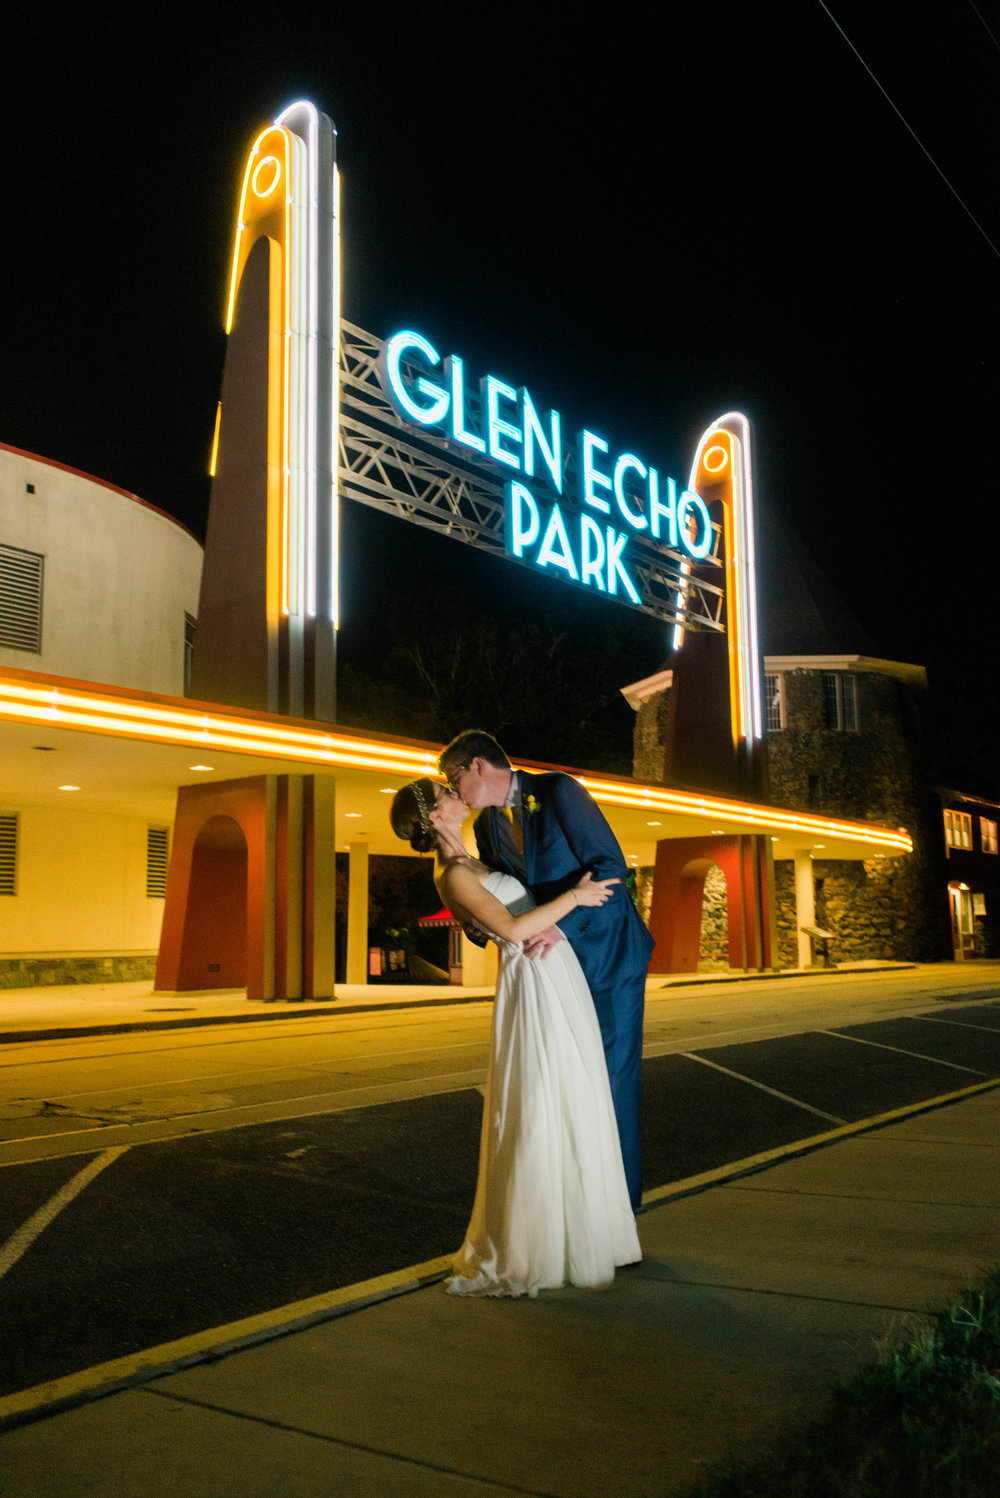 clarksweddingpreview-53.jpg